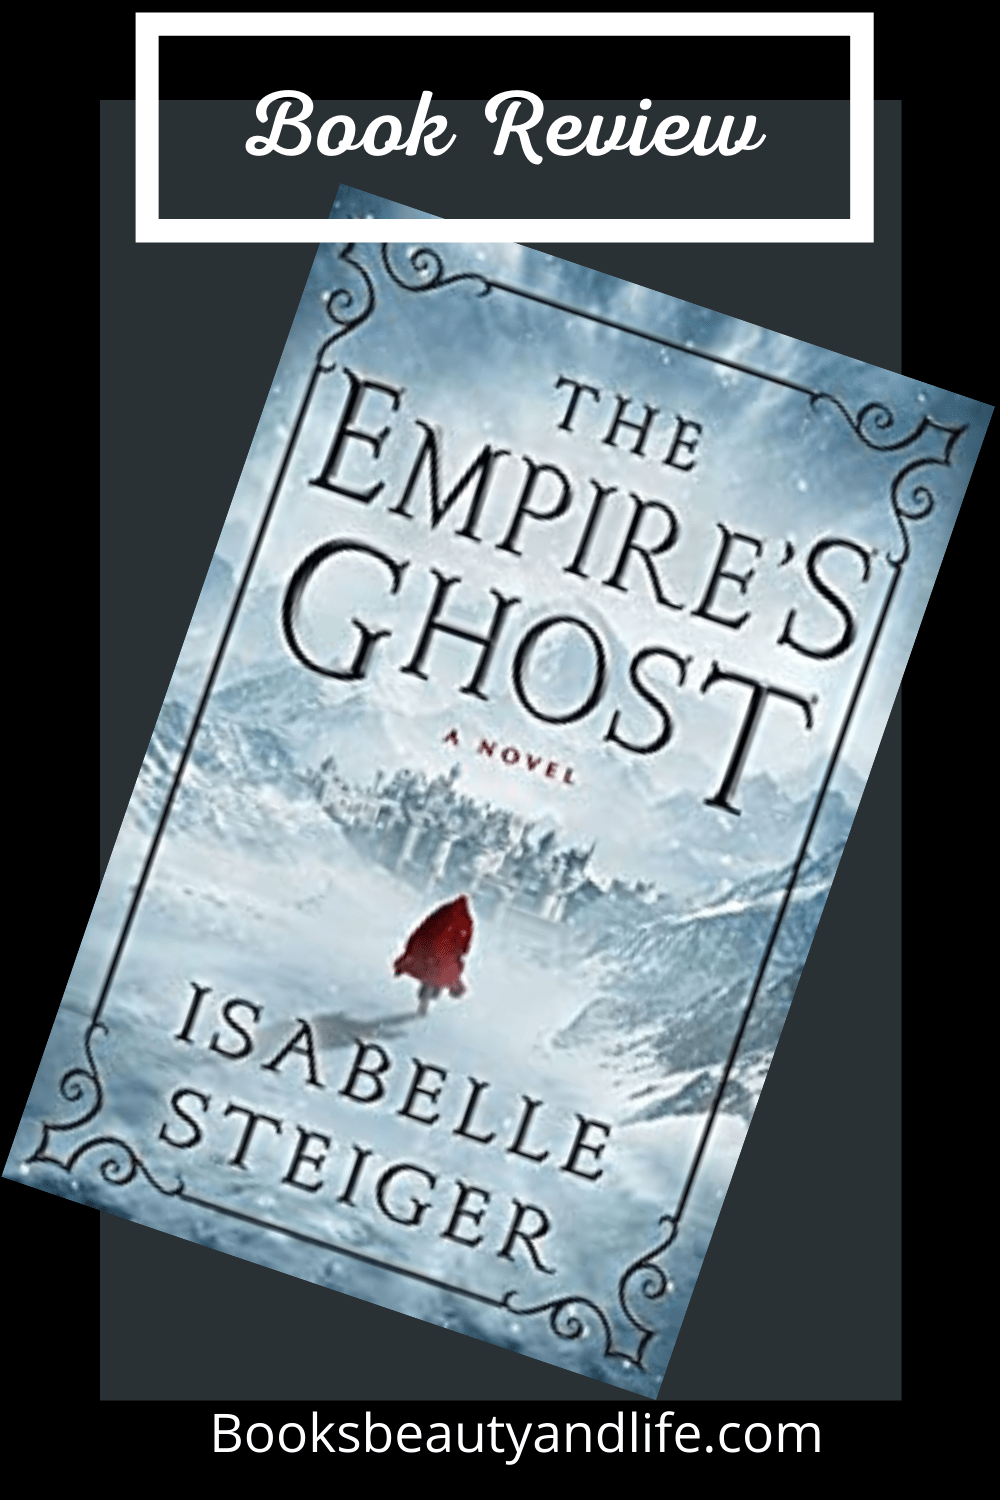 The Empire's Ghost by Isabelle Steiger